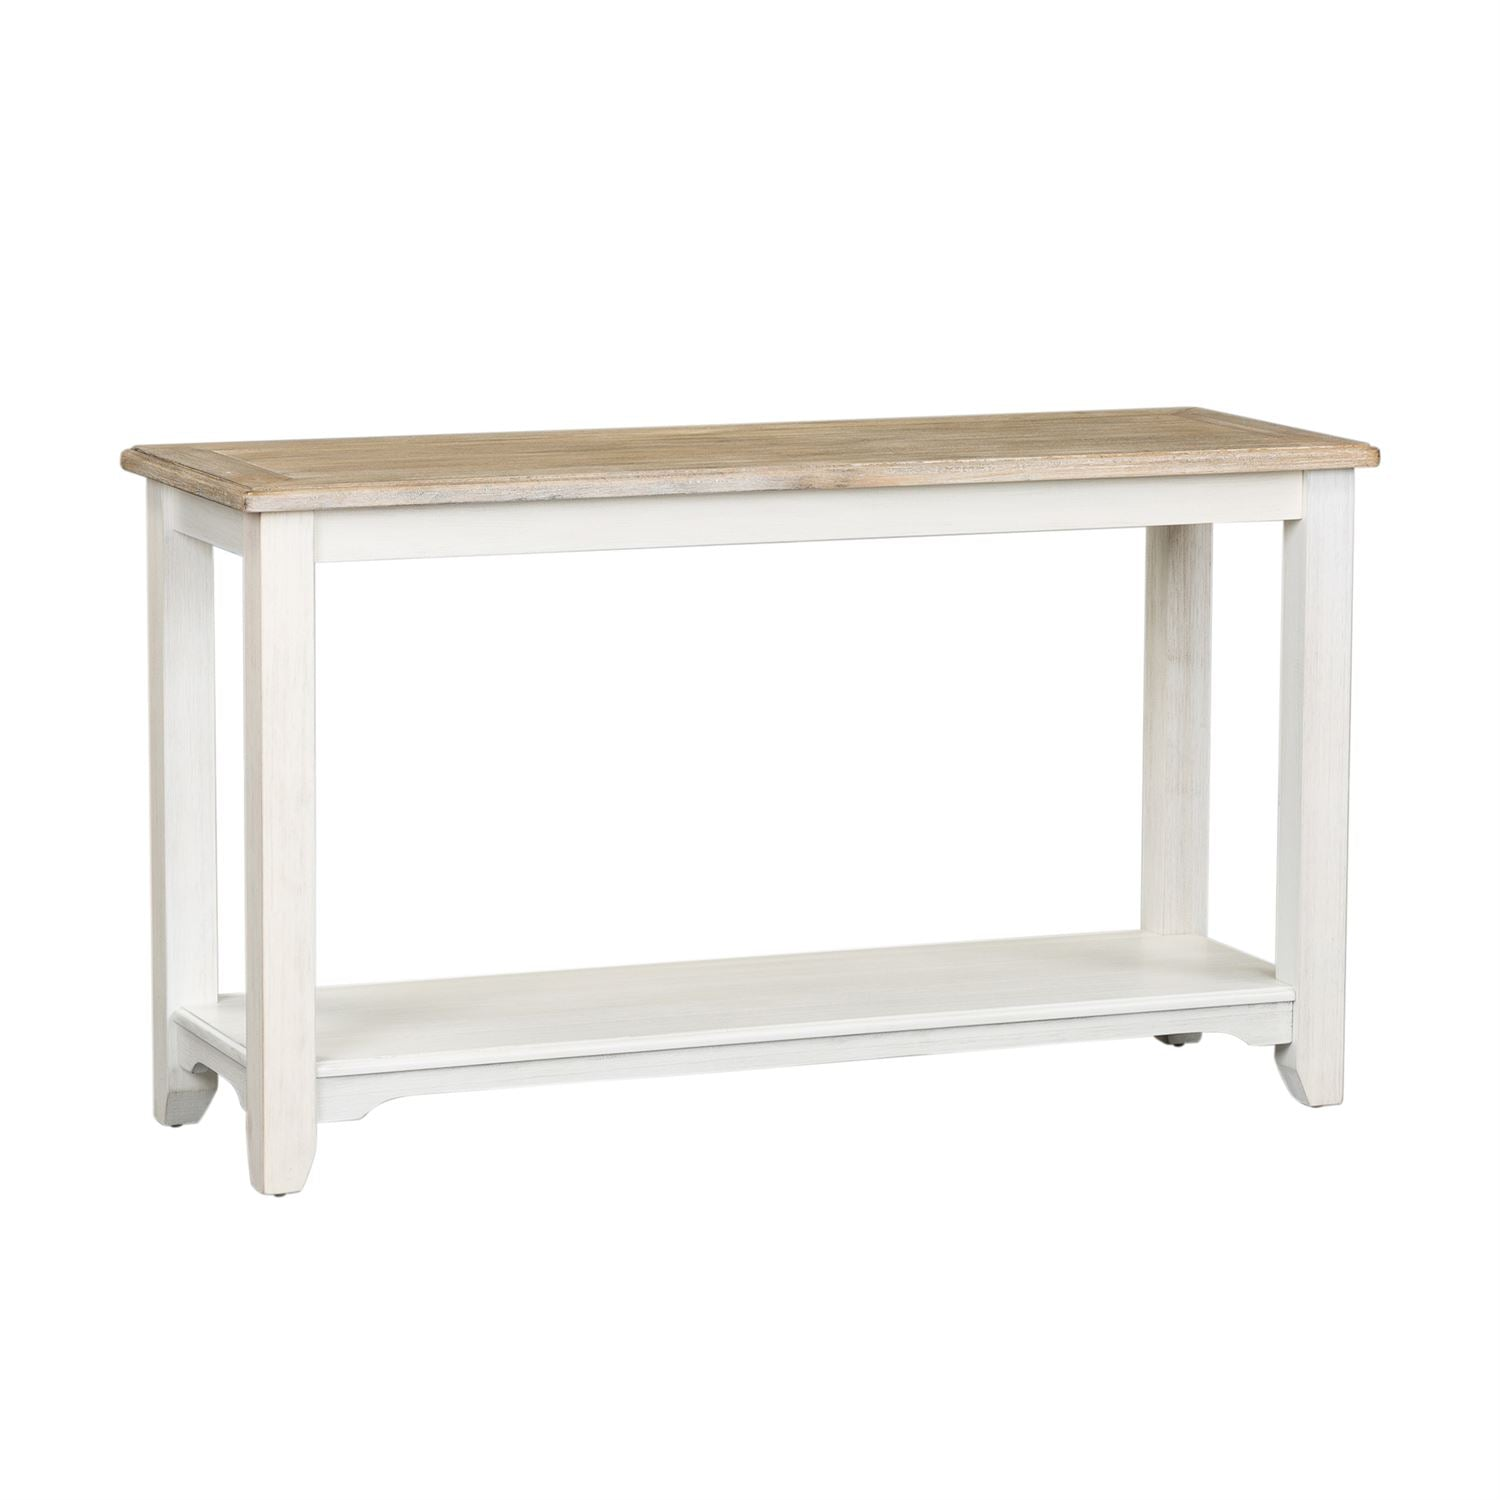 Summerville Sofa Table